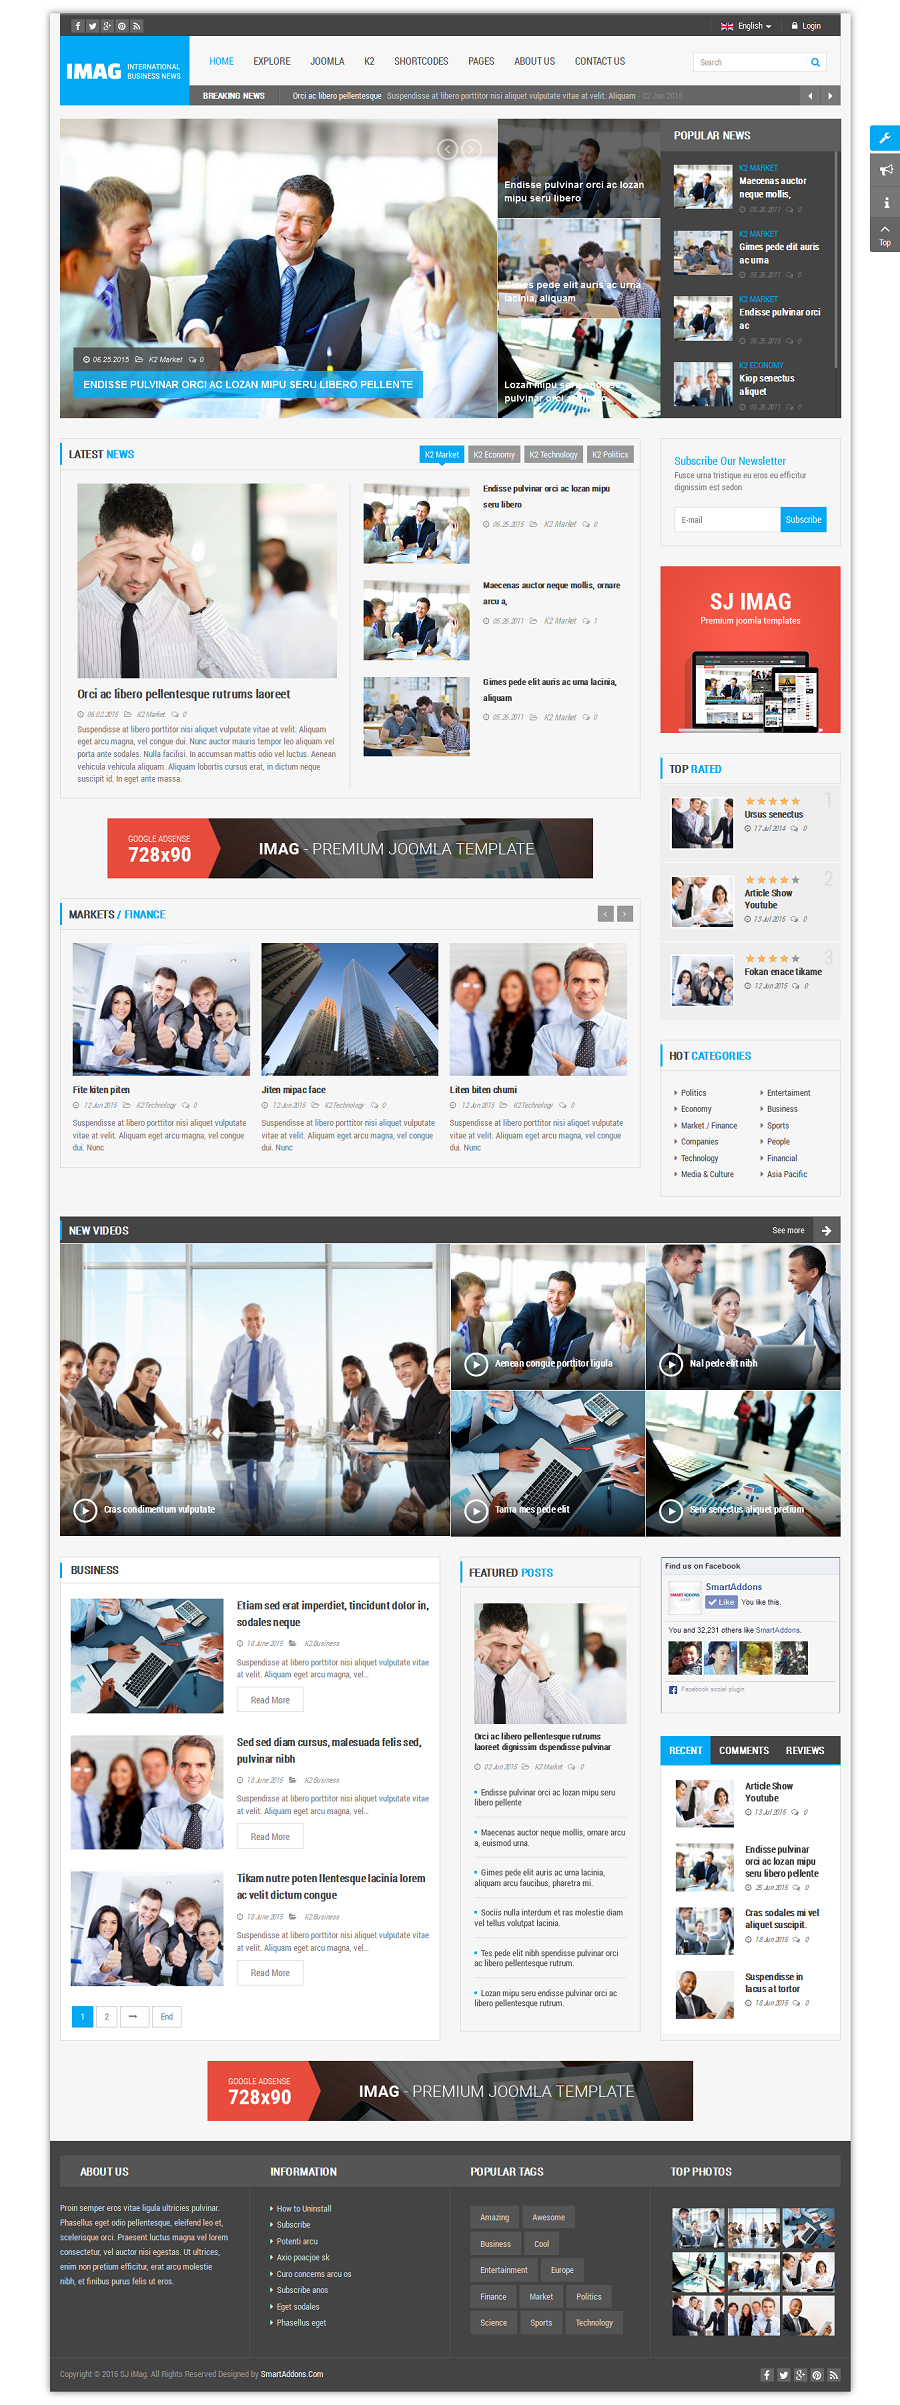 SJ iMag - Responsive Joomla News magazine Template - 09_framed-layout.png